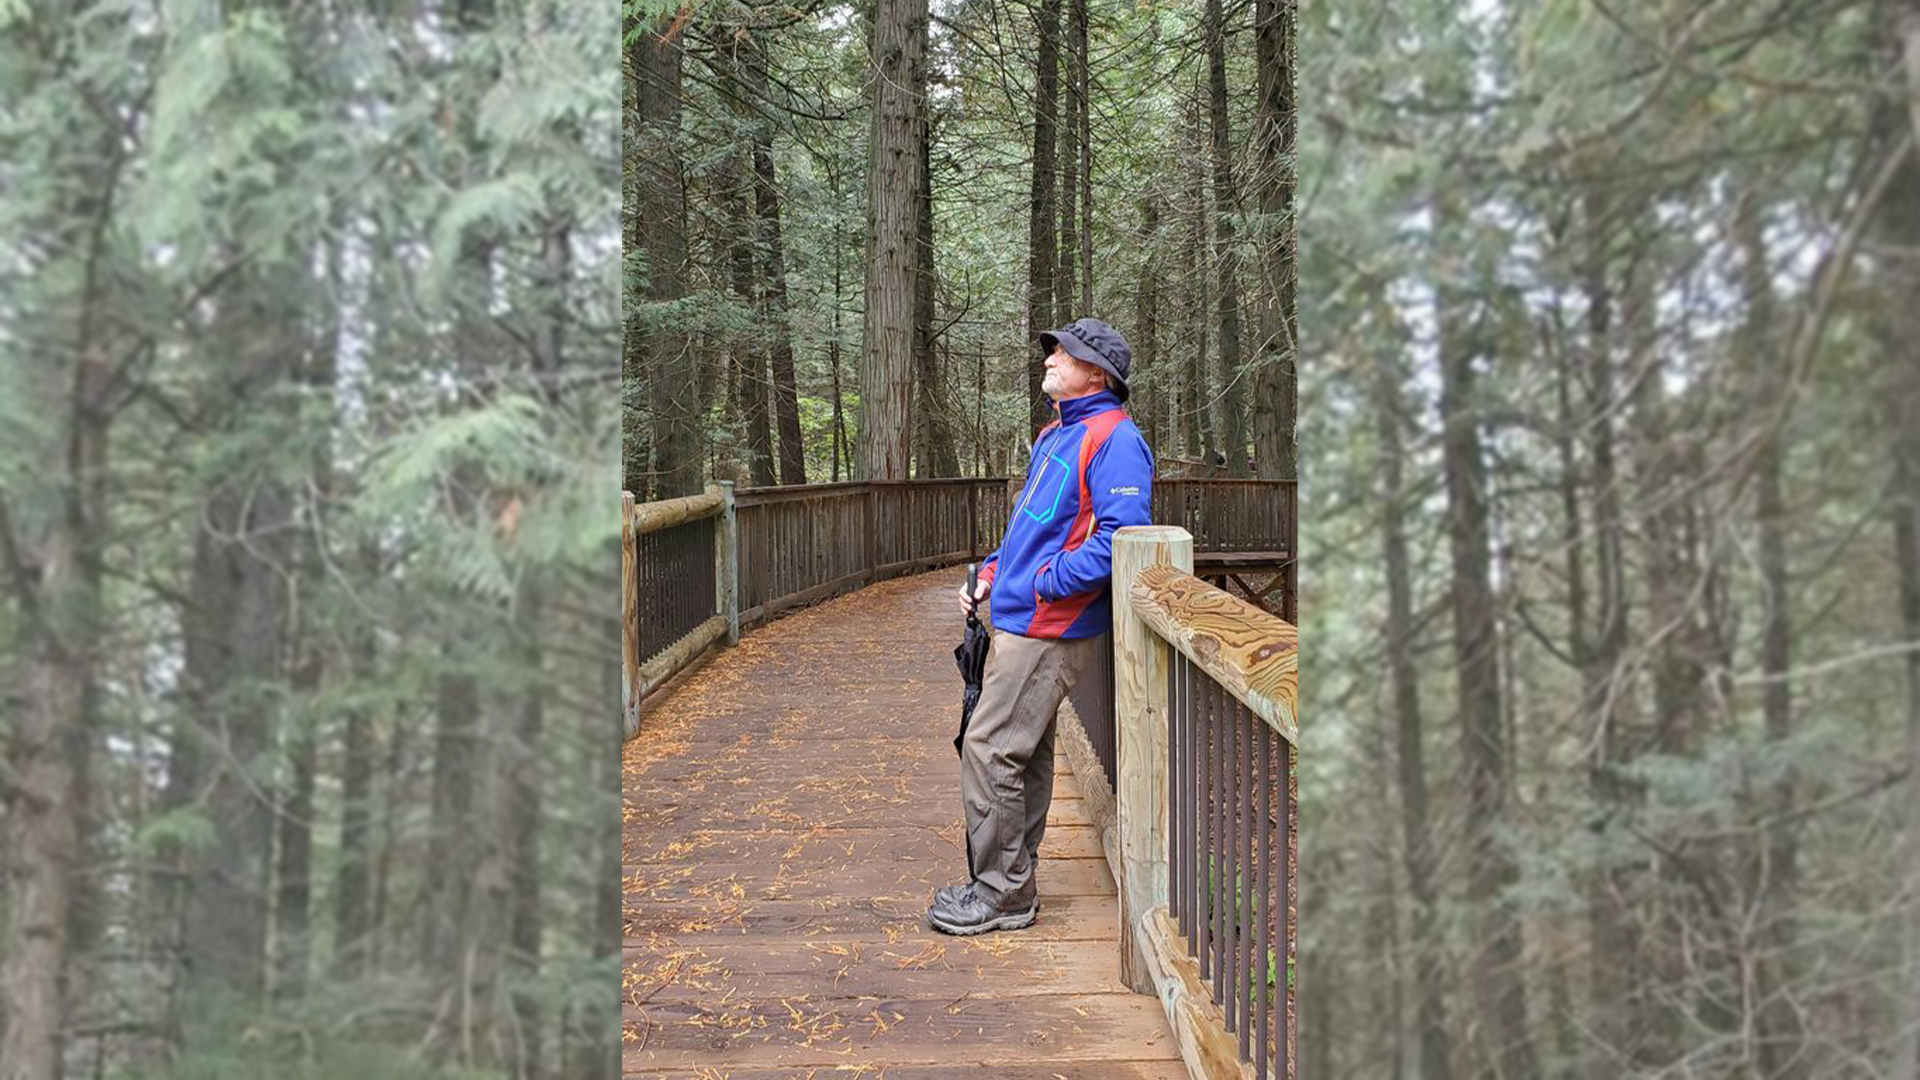 A man stands on a boardwalk trail in a forest